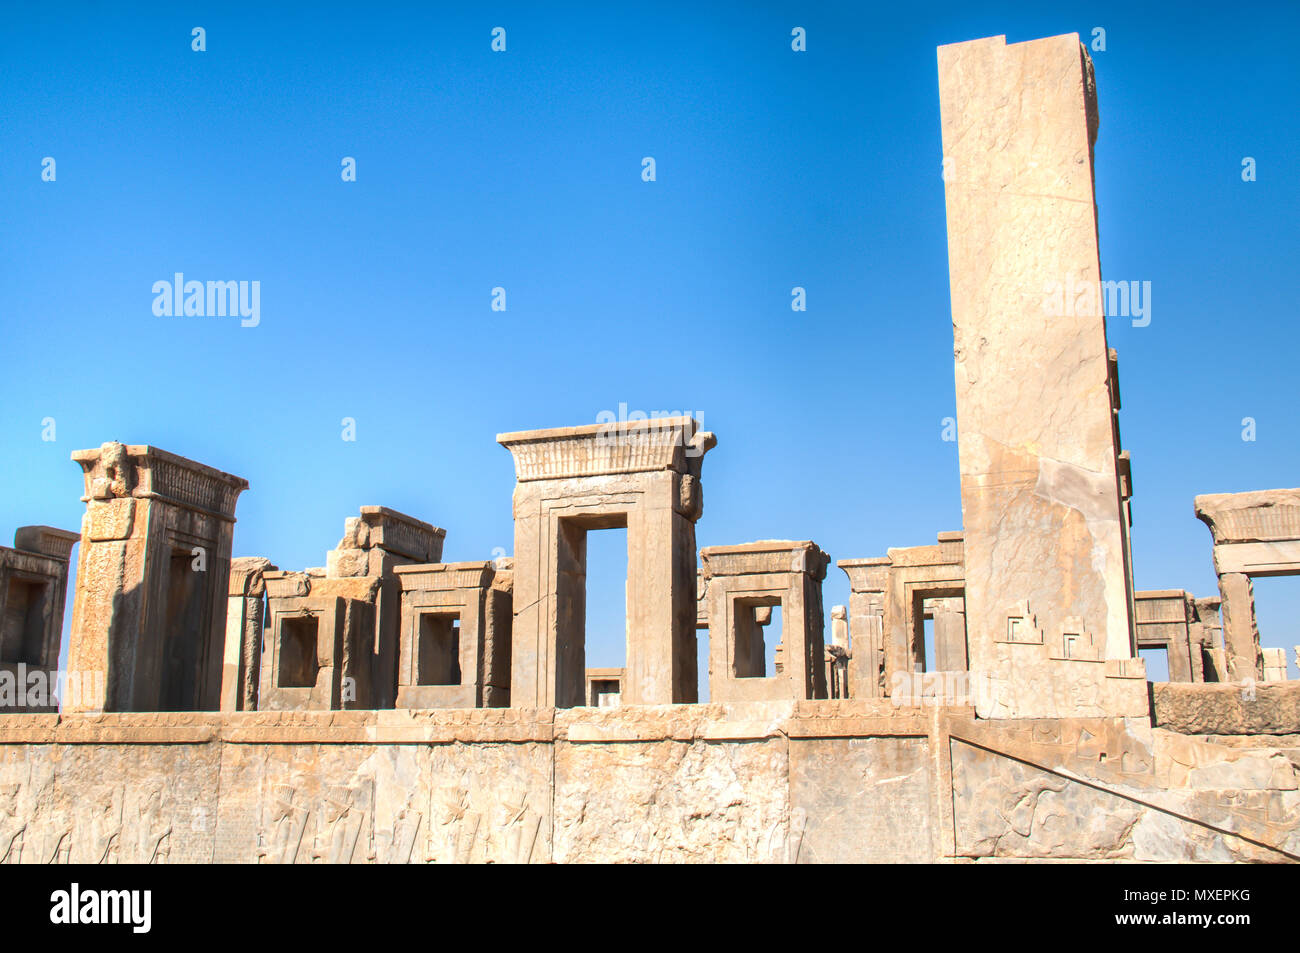 The Ancient city Persepolis was once the capital of the Achaemenid empire and is now UNESCO heritage. The site can be found near Shiraz in Iran Stock Photo